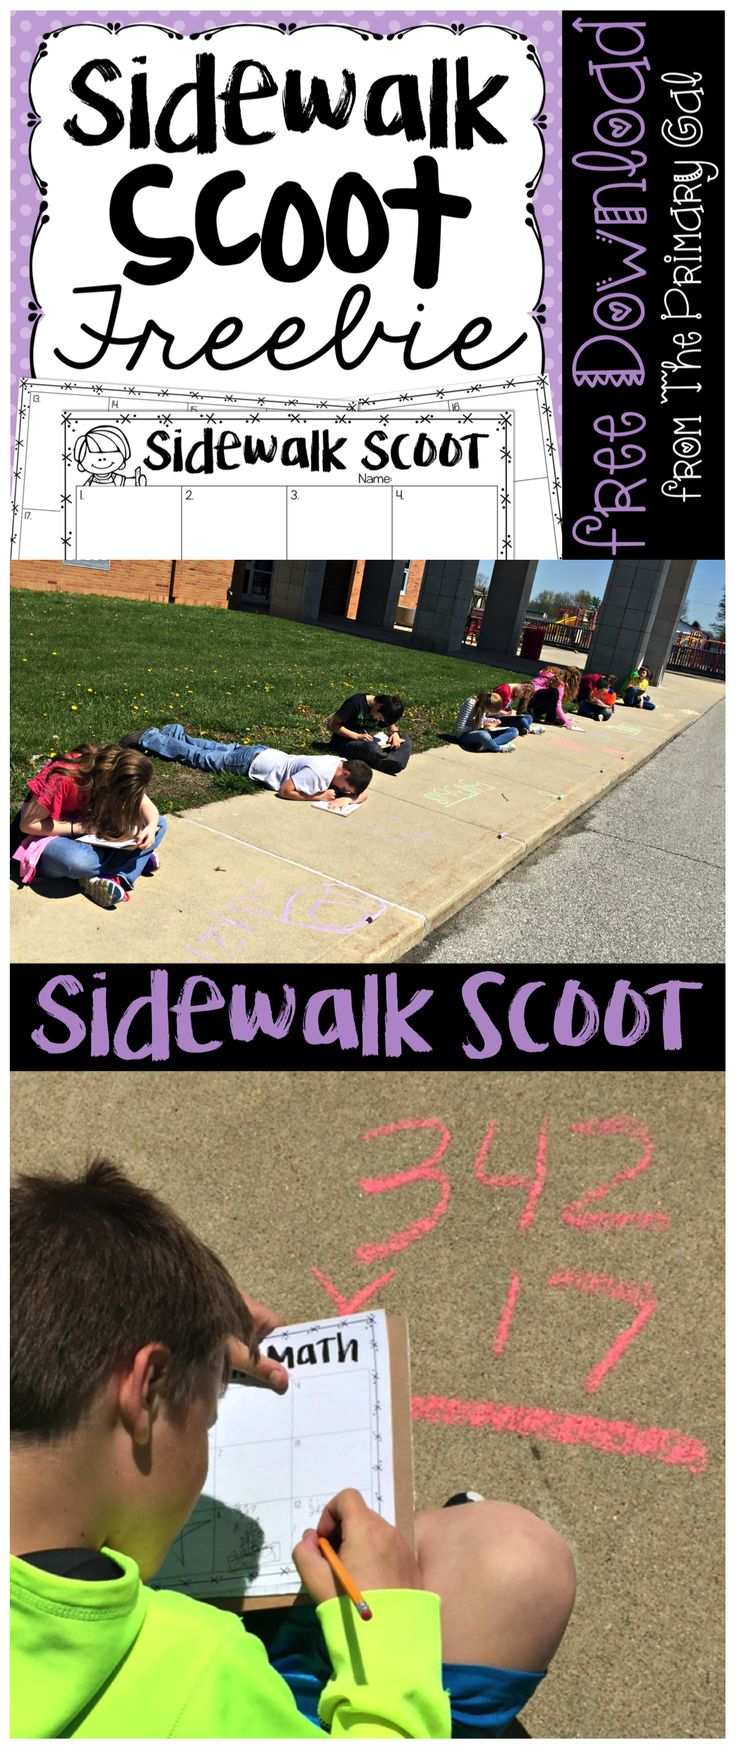 Looking for an education reason to take you kids outside? Try Sidewalk Scoot! :)